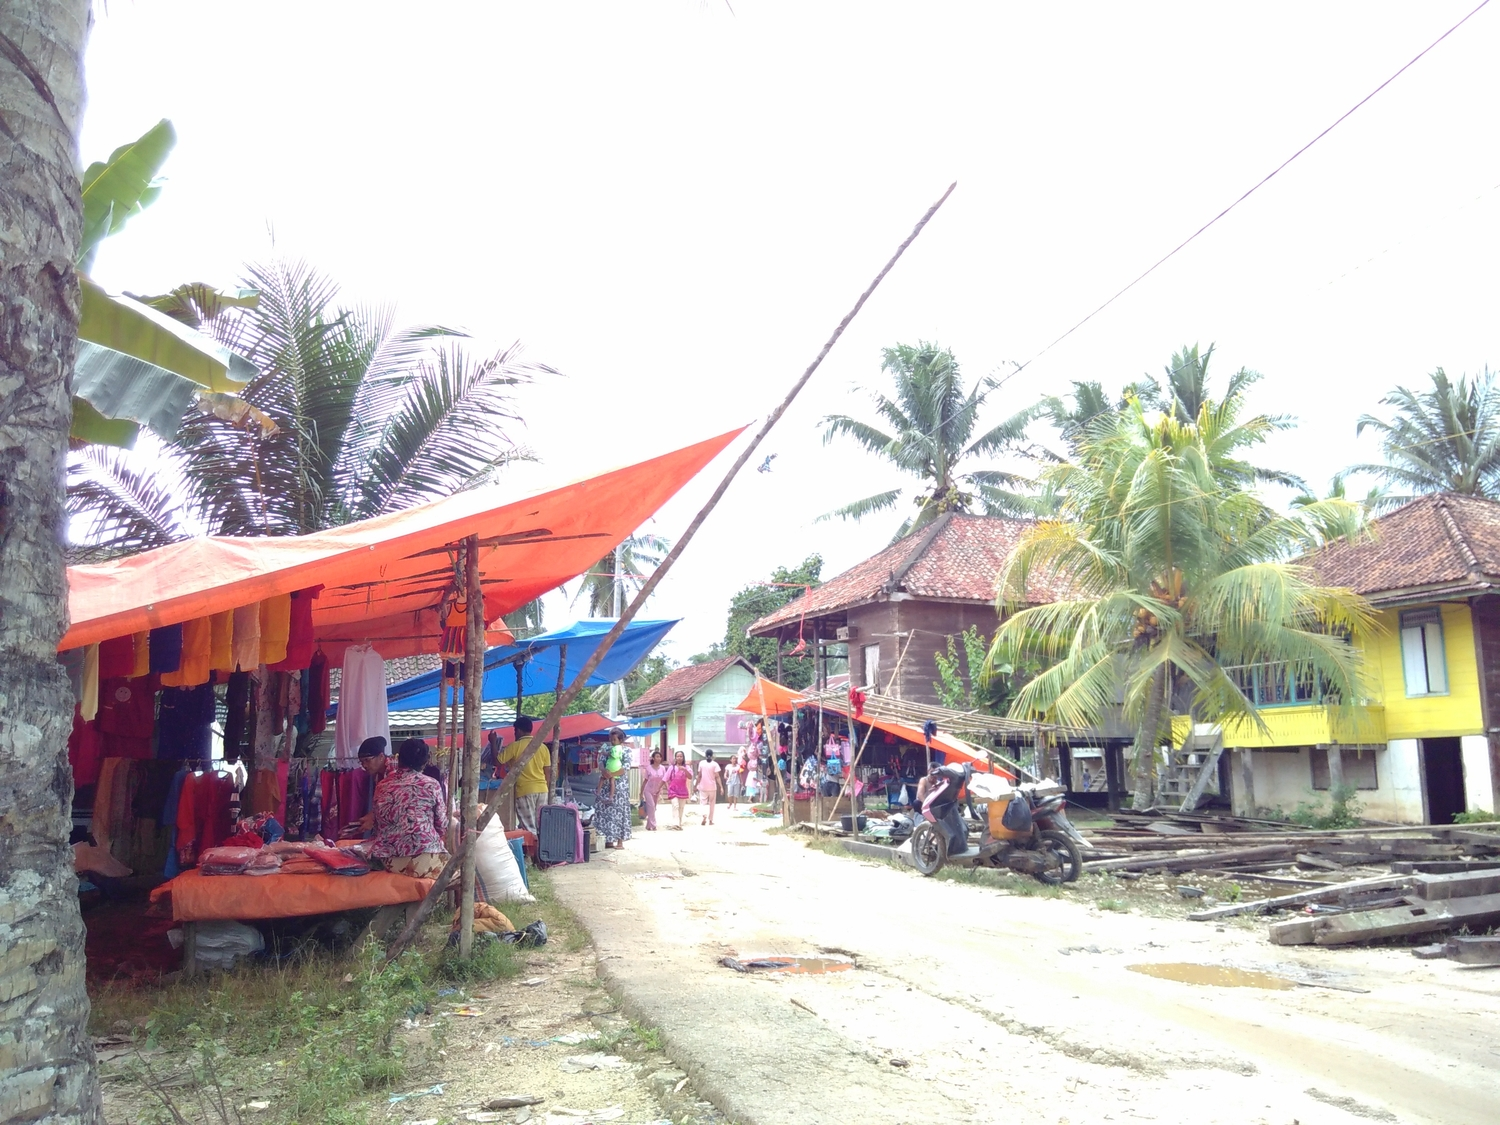 A market scene at Muara Sekalo (in Indonesia), the village where the research was conducted